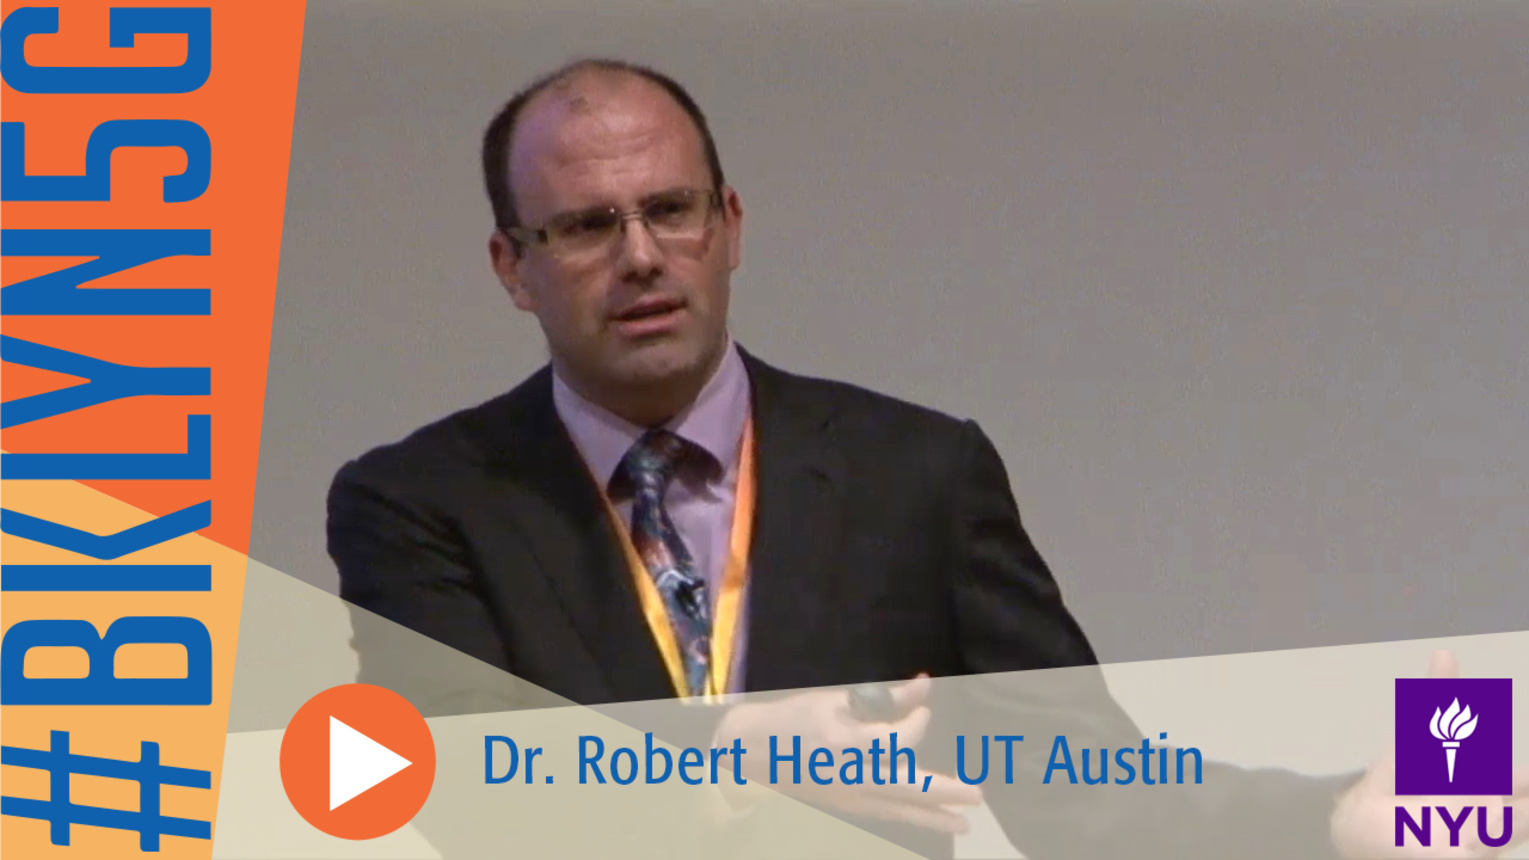 The Brooklyn 5G Summit: Dr. Robert Heath of UT Austin